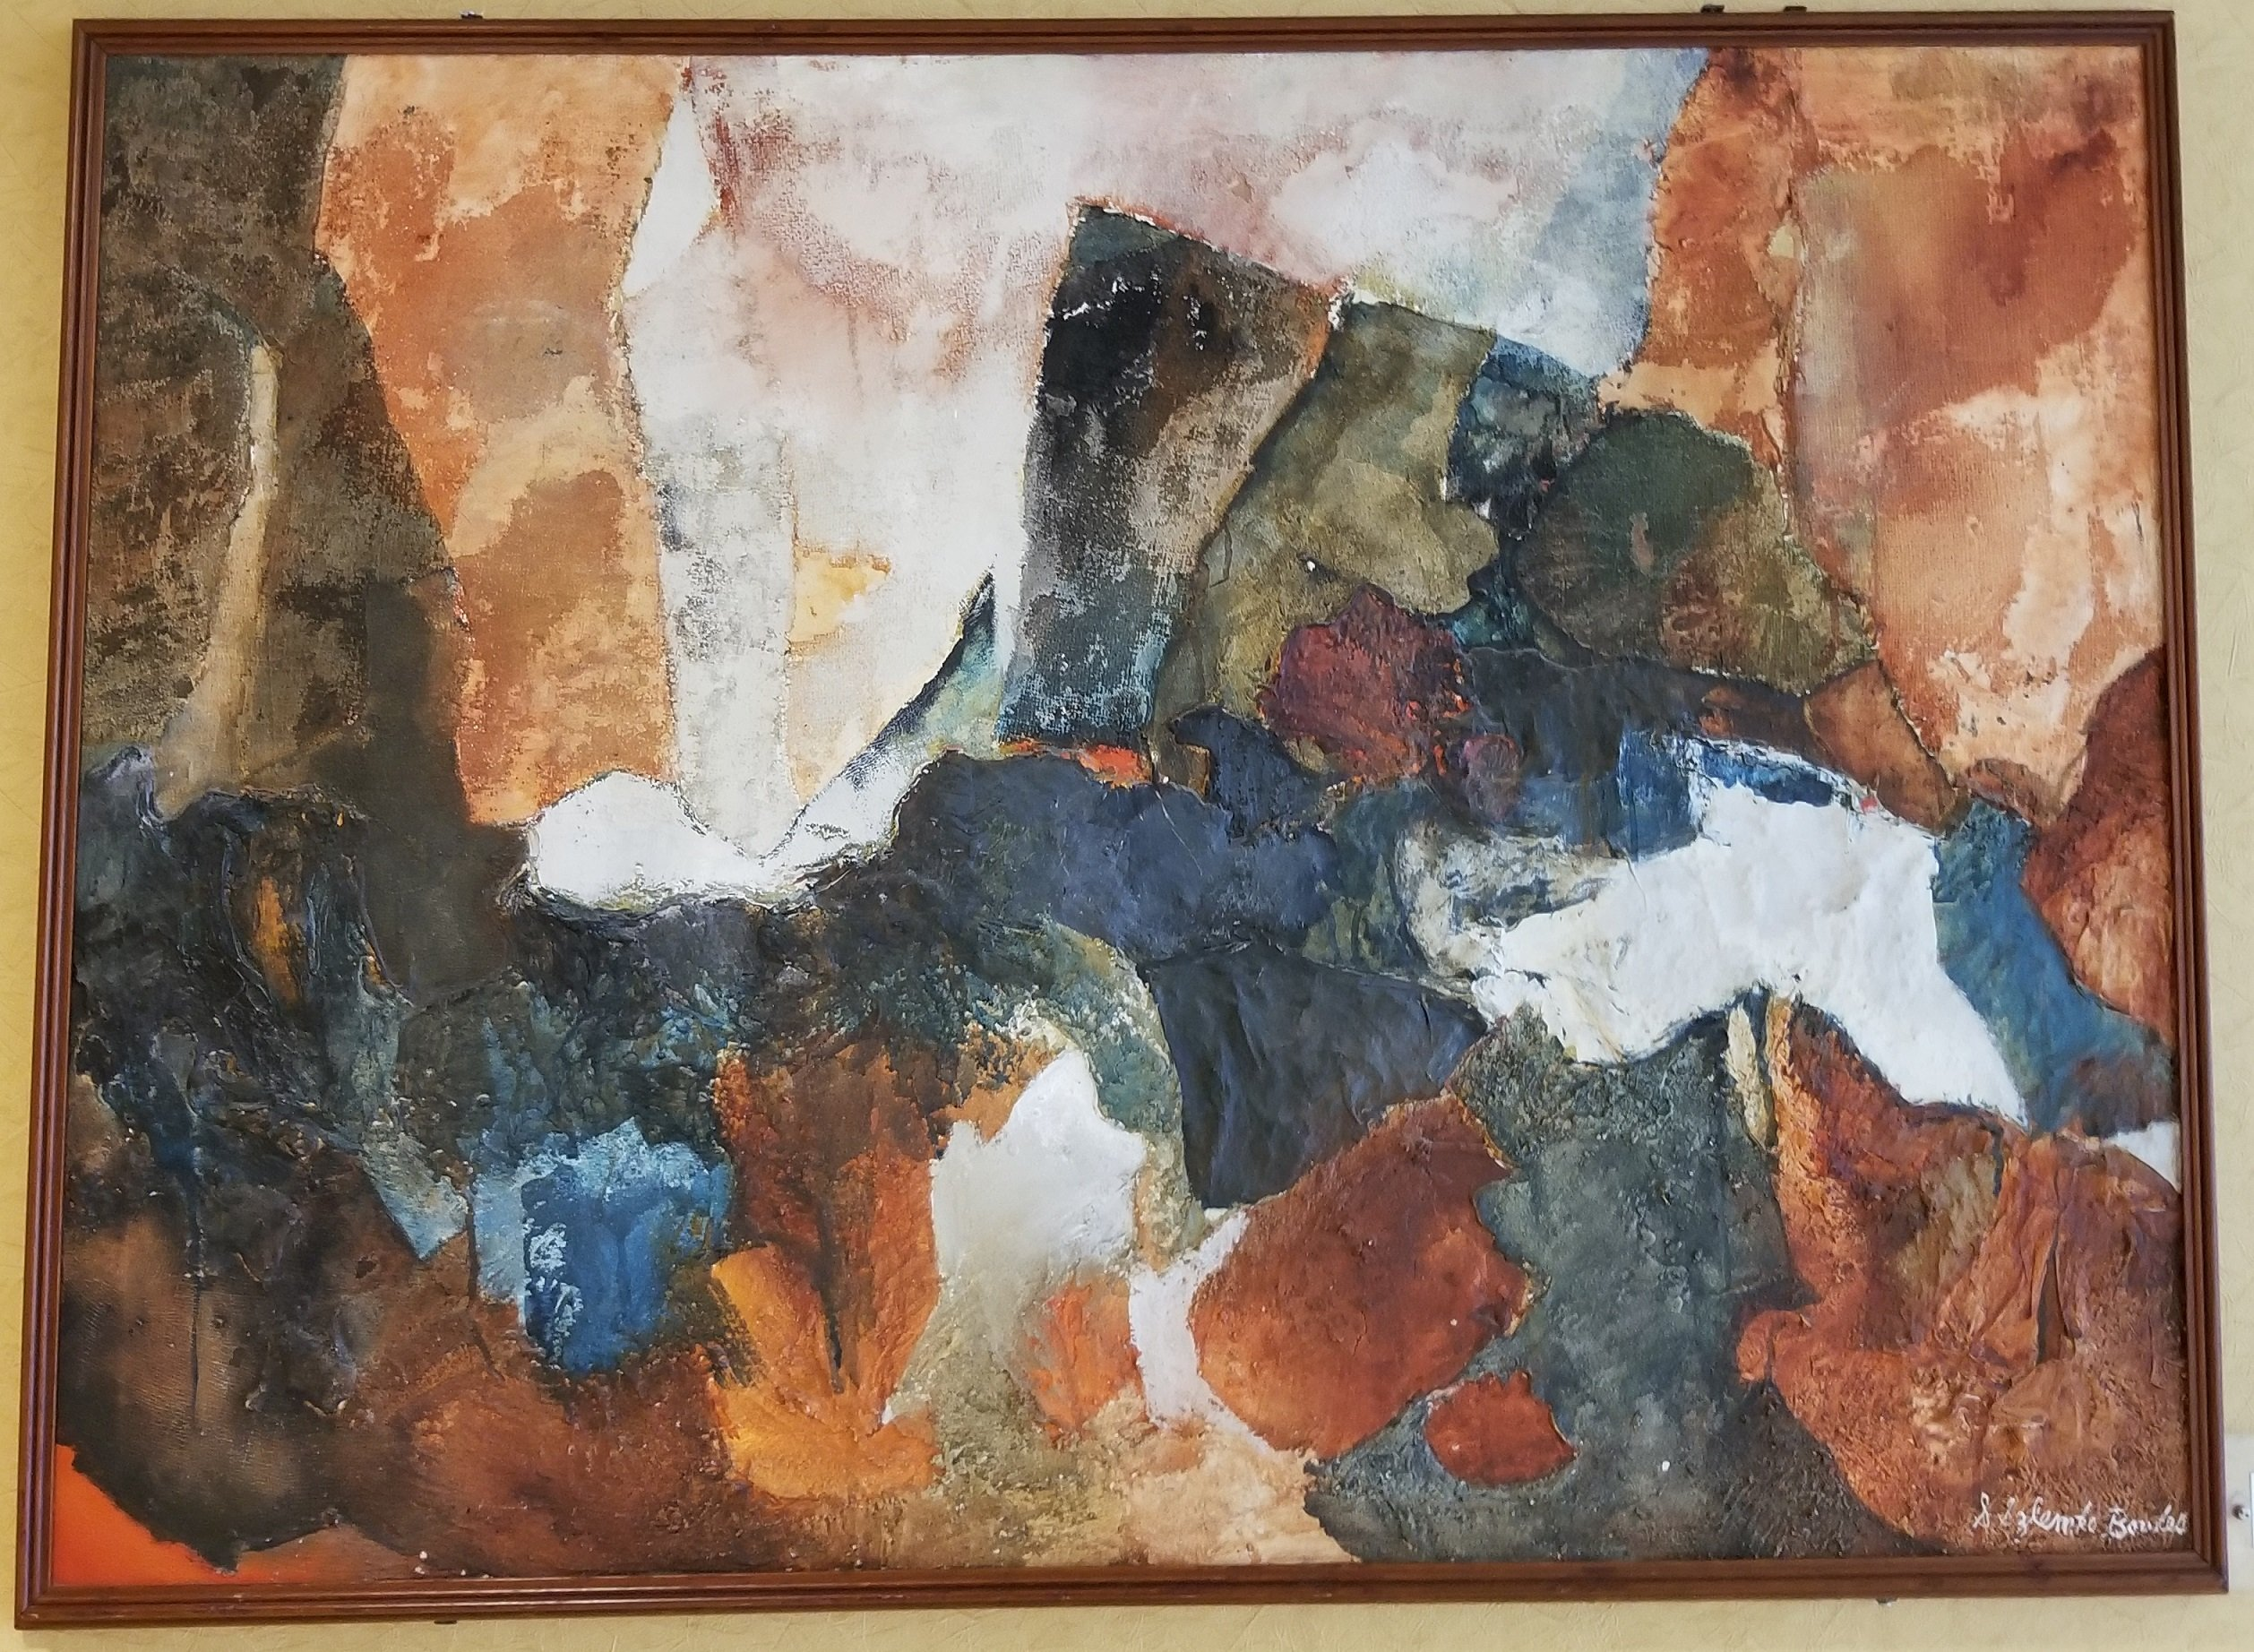 """Untitled Abstract"" by Suzanne S. Bowles. Oil painting. On display on the second floor of the Mountainlair down the hall to the right after coming up the main stairs. In the permanent Mountainlair Collection."